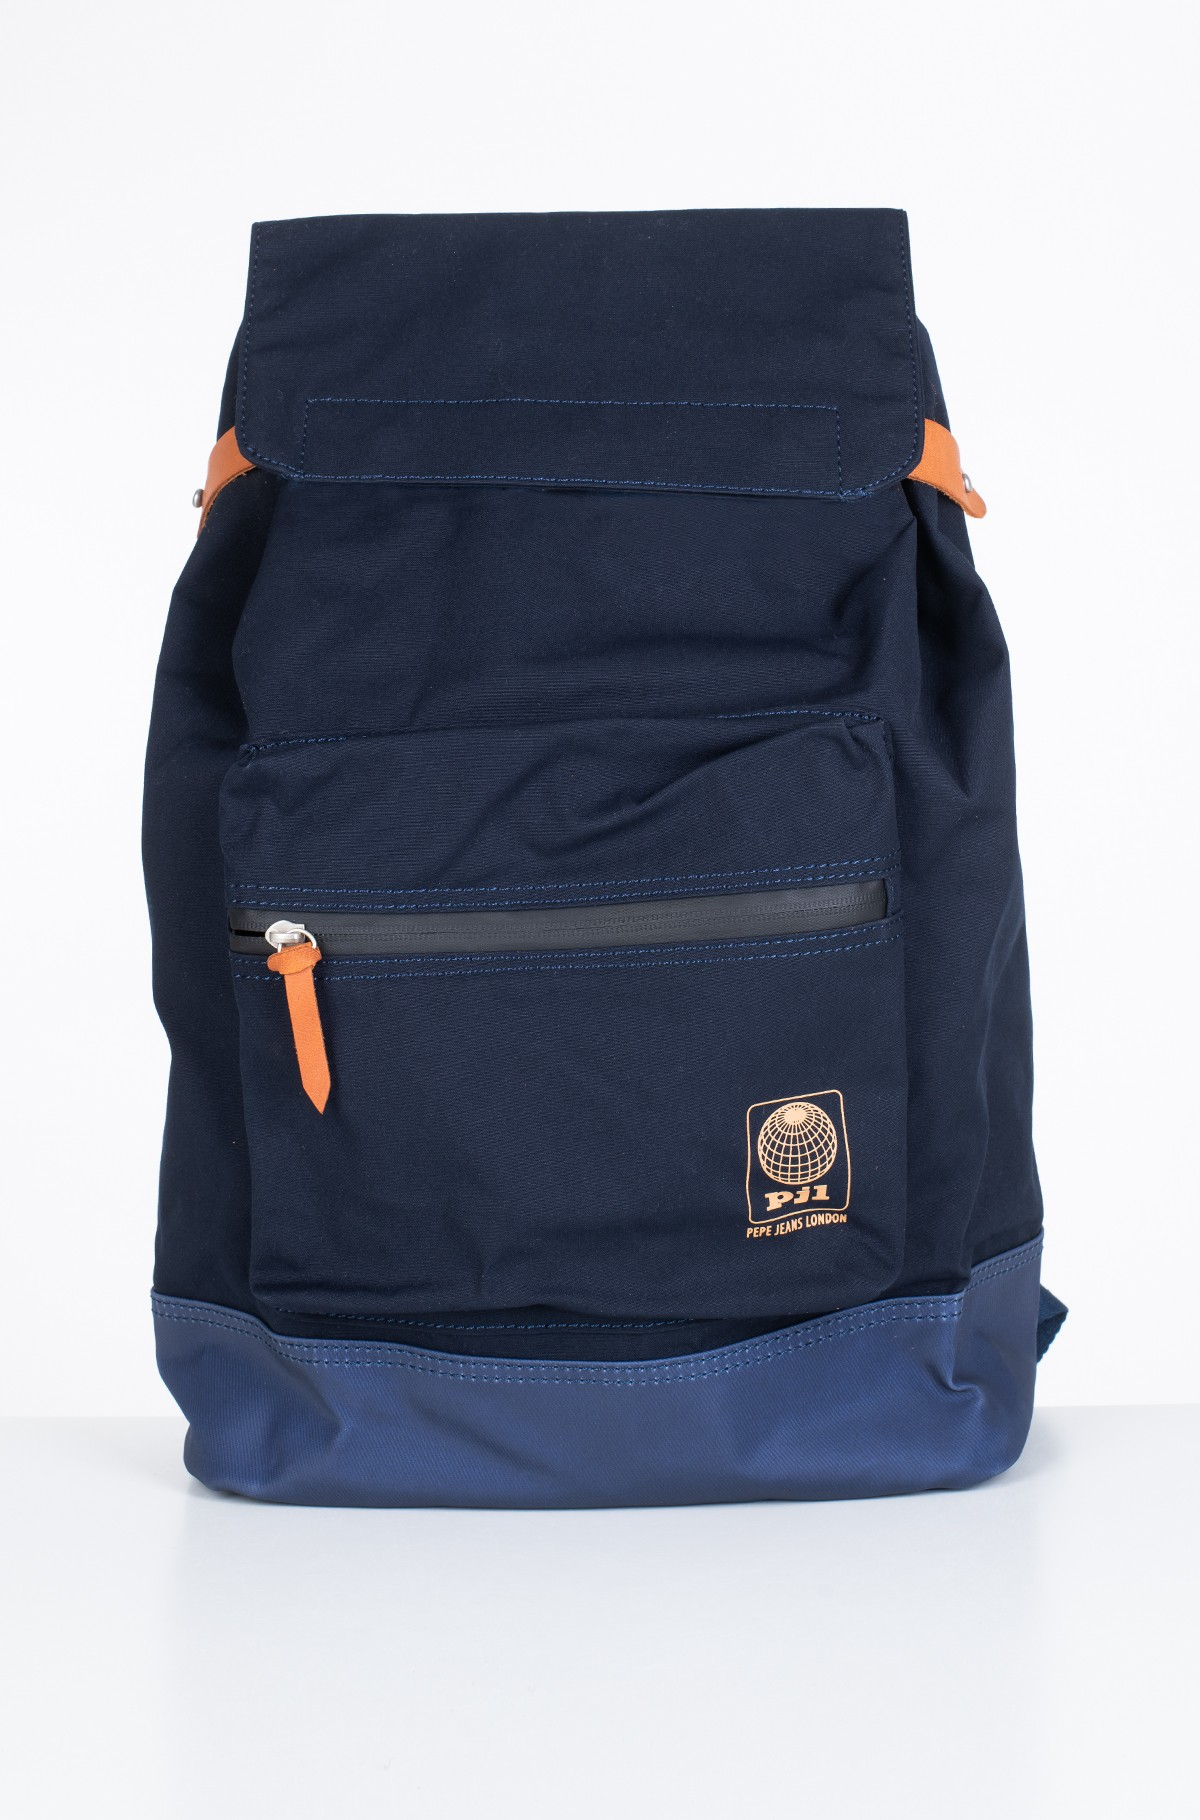 Kuprinė REGANS BACKPACK/PM030580-full-1